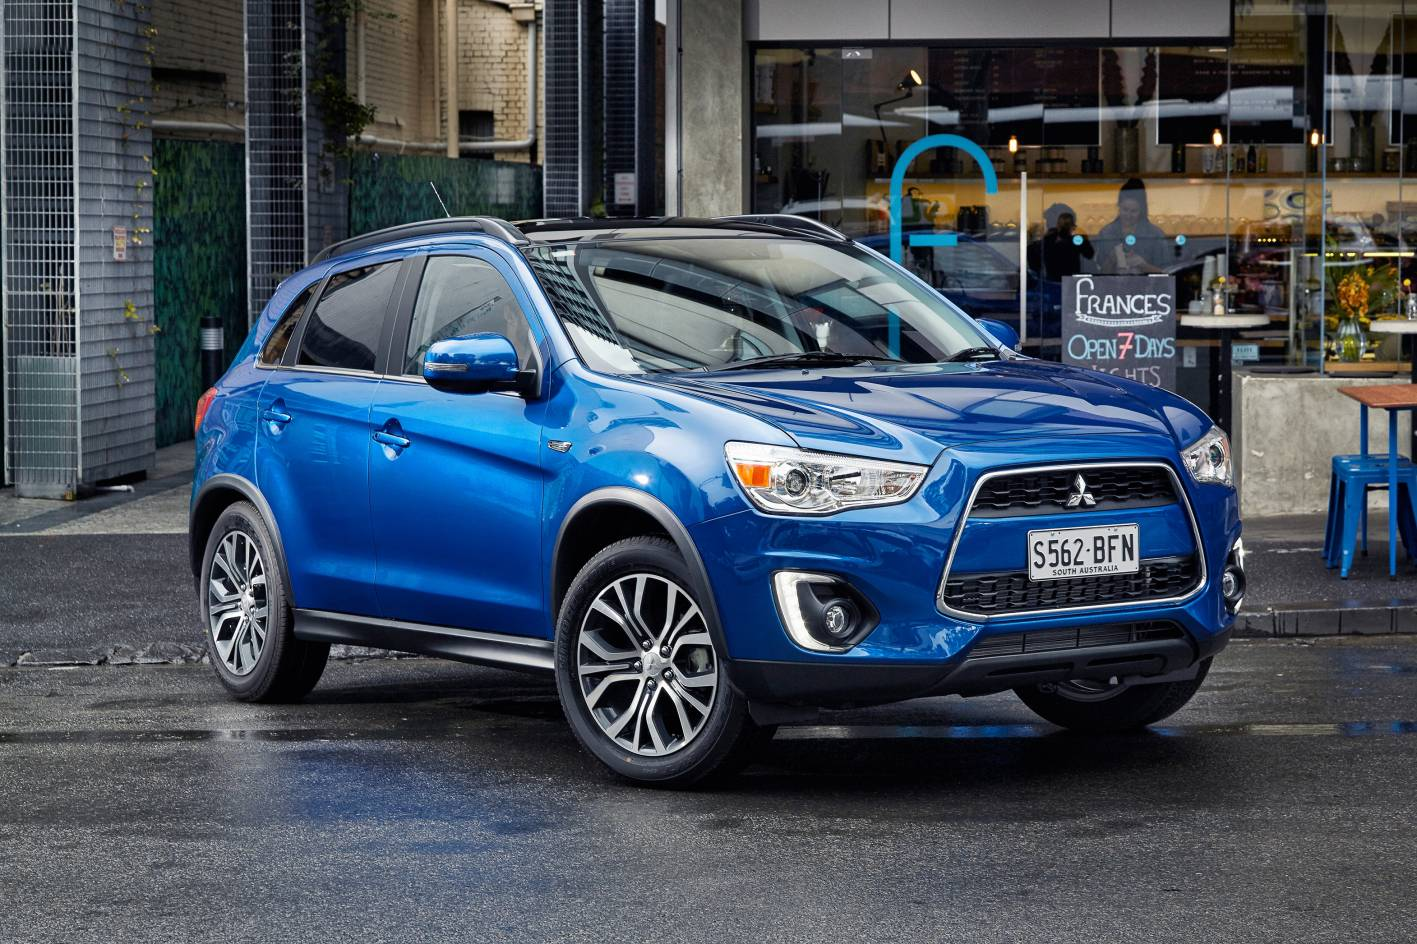 2018 Camaro Inside >> Styling tweaks and digital radio for 2015 Mitsubishi ASX - ForceGT.com